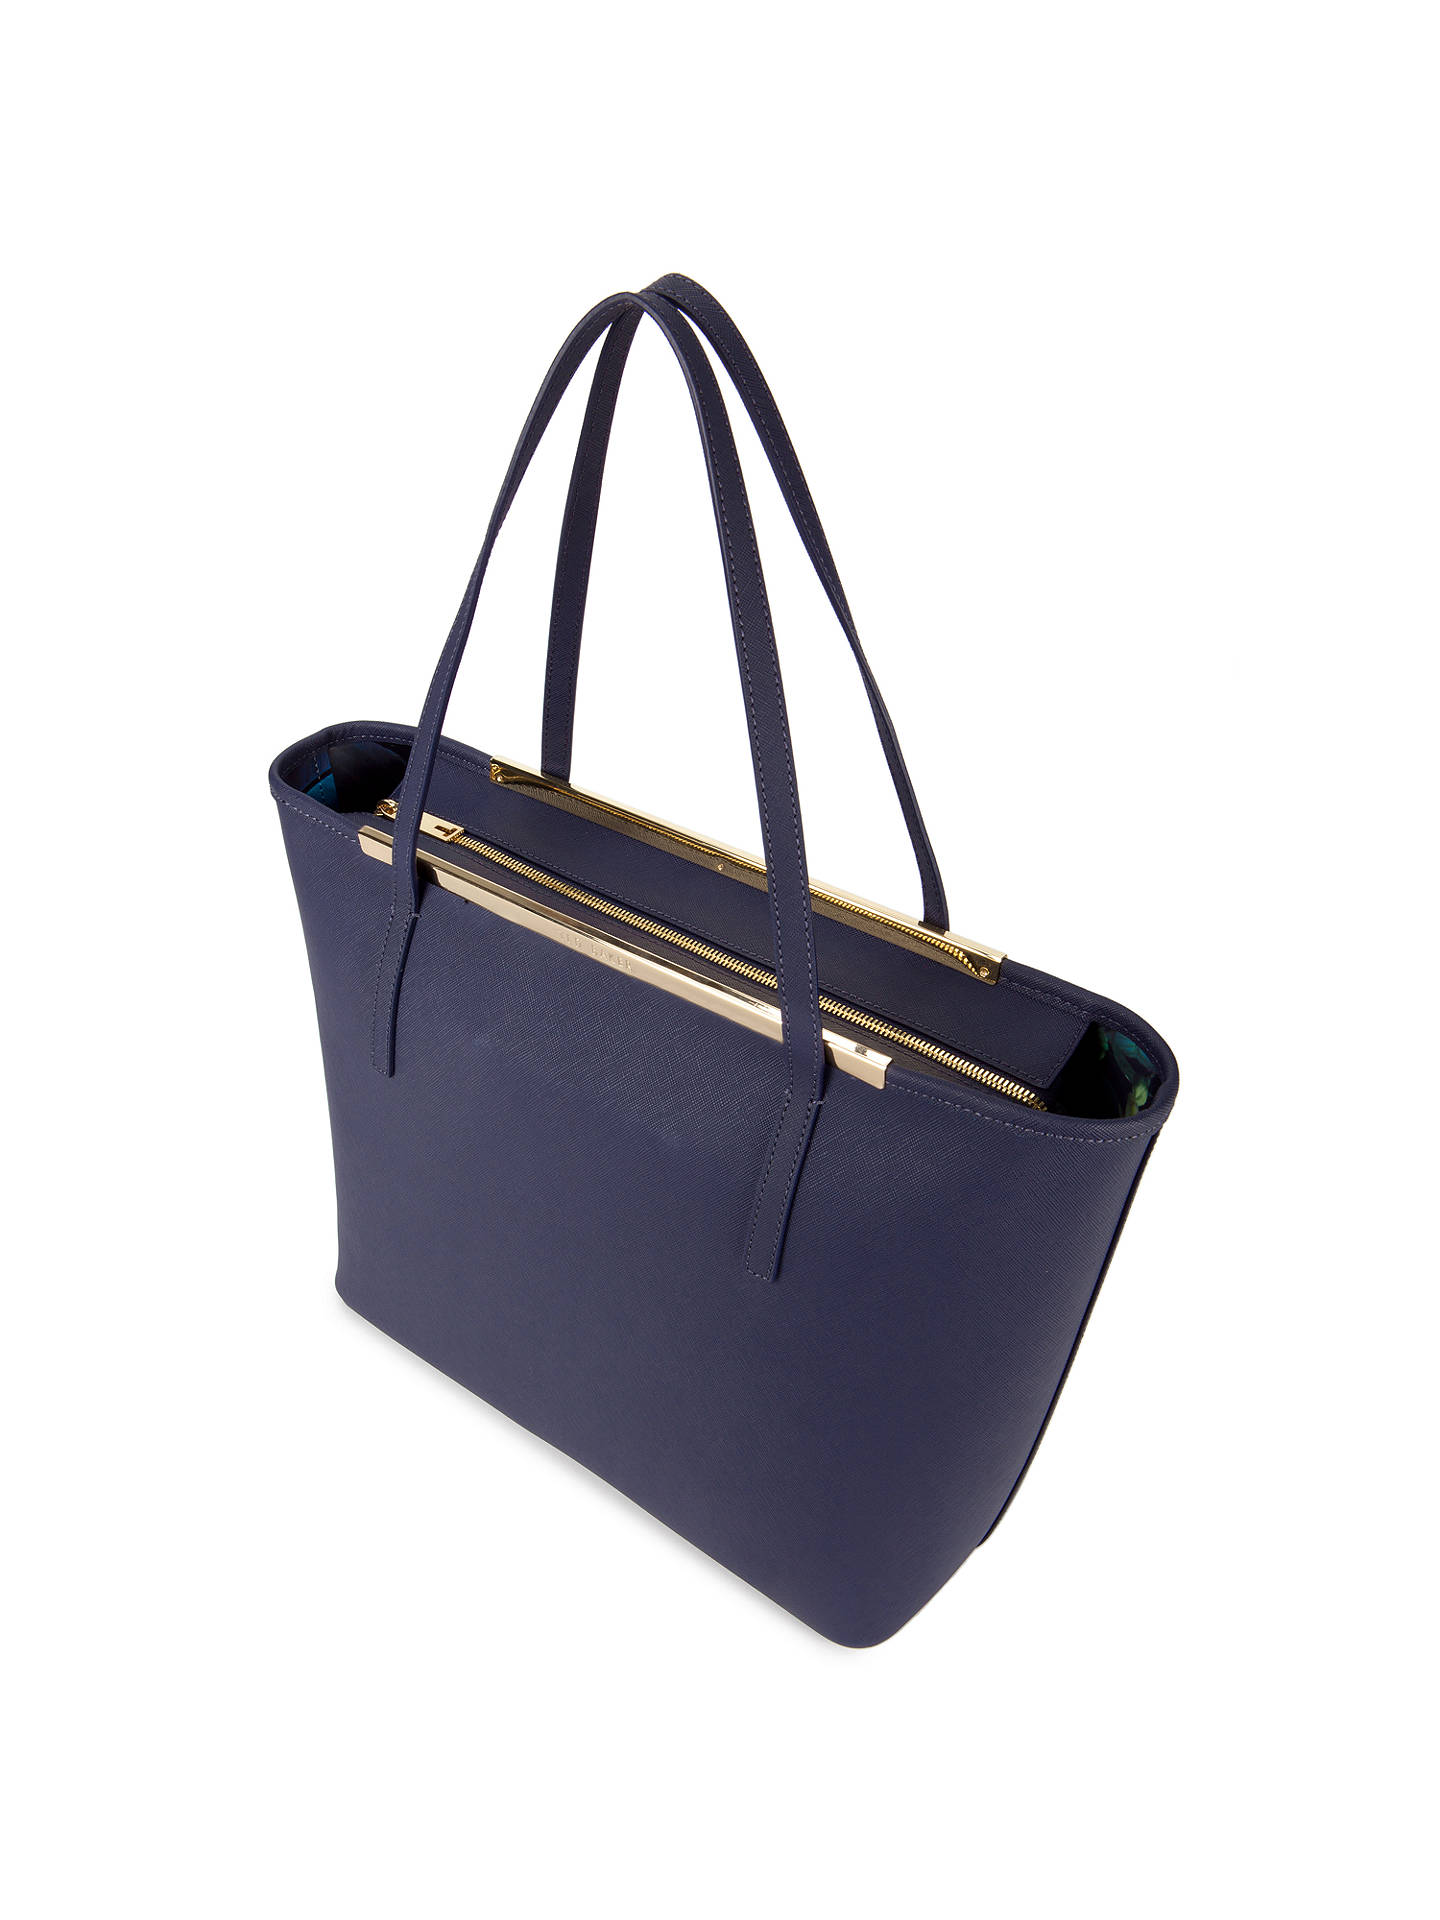 6c6a89bfd8 ... Buy Ted Baker Noelle Crosshatch Leather Shopper Bag, Dark Blue Online  at johnlewis.com ...